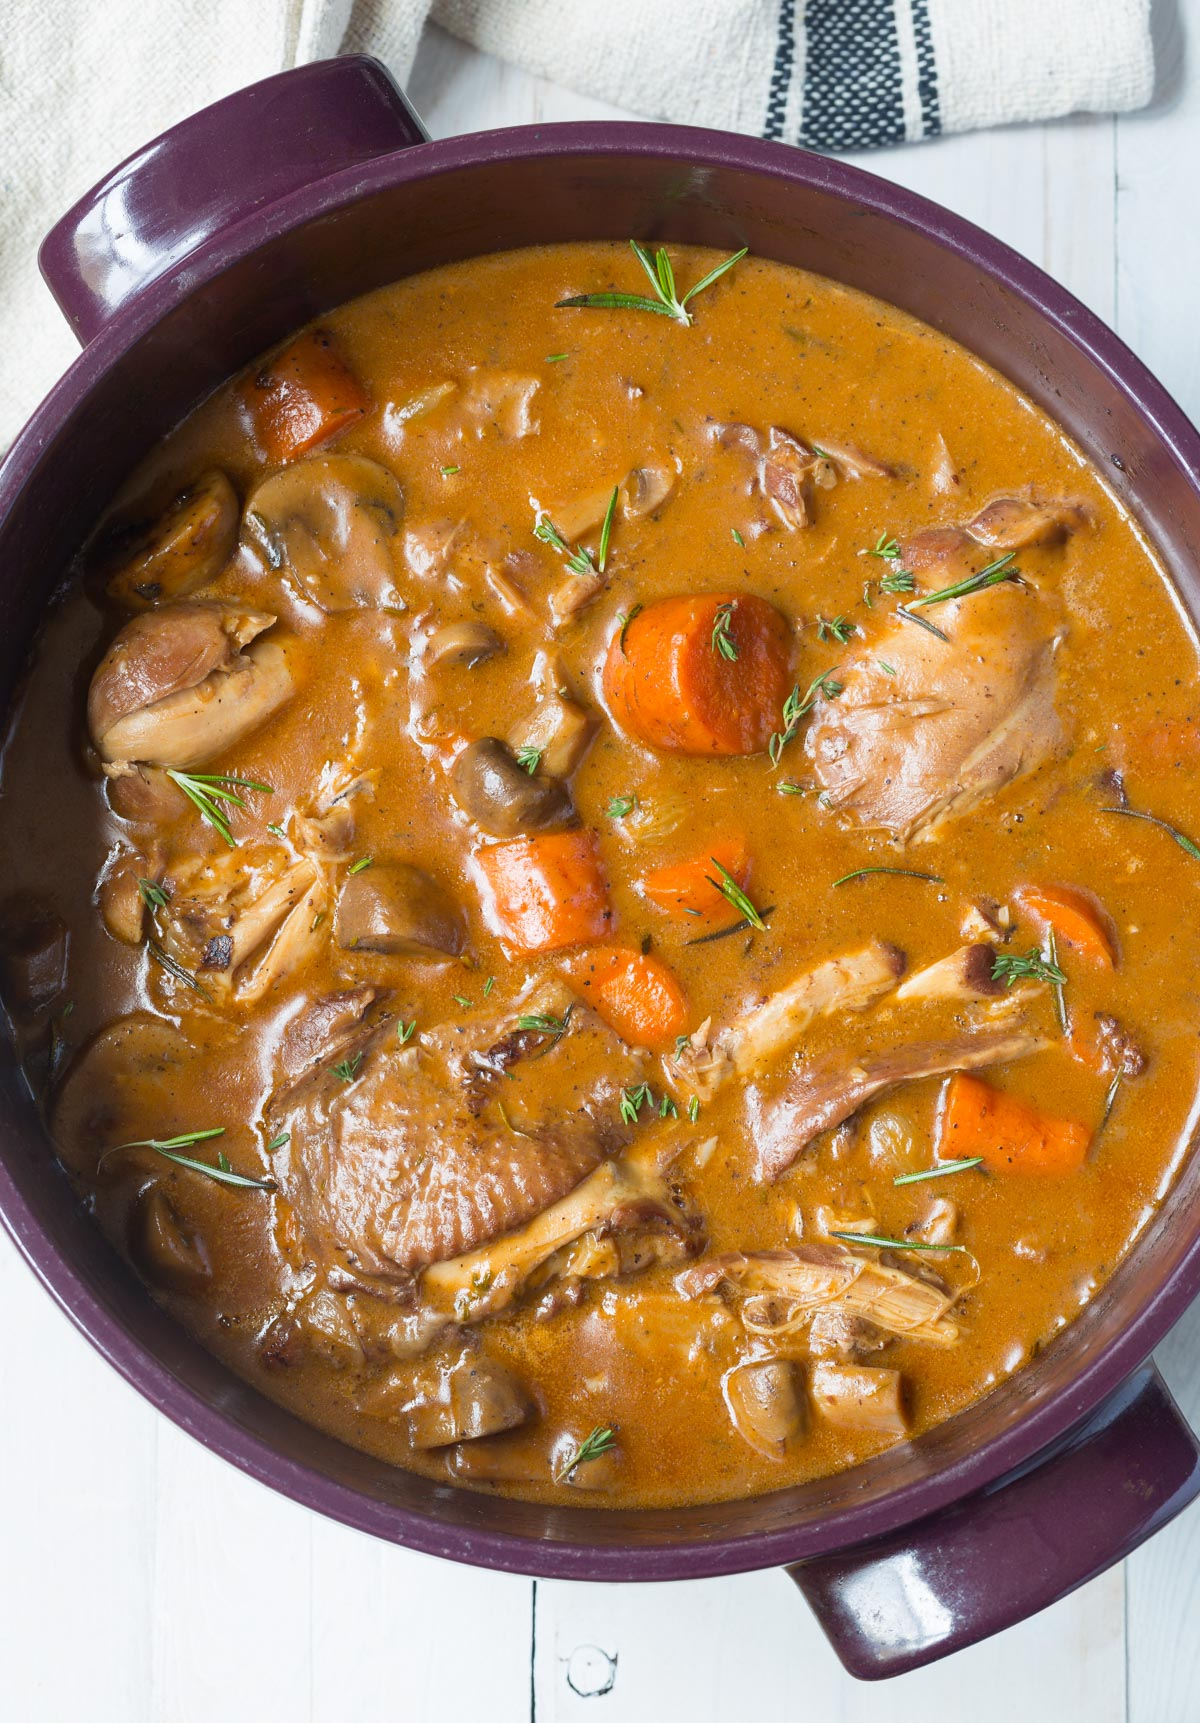 Best Creamy Coq au Vine Recipe #ASpicyPerspective #french #holiday